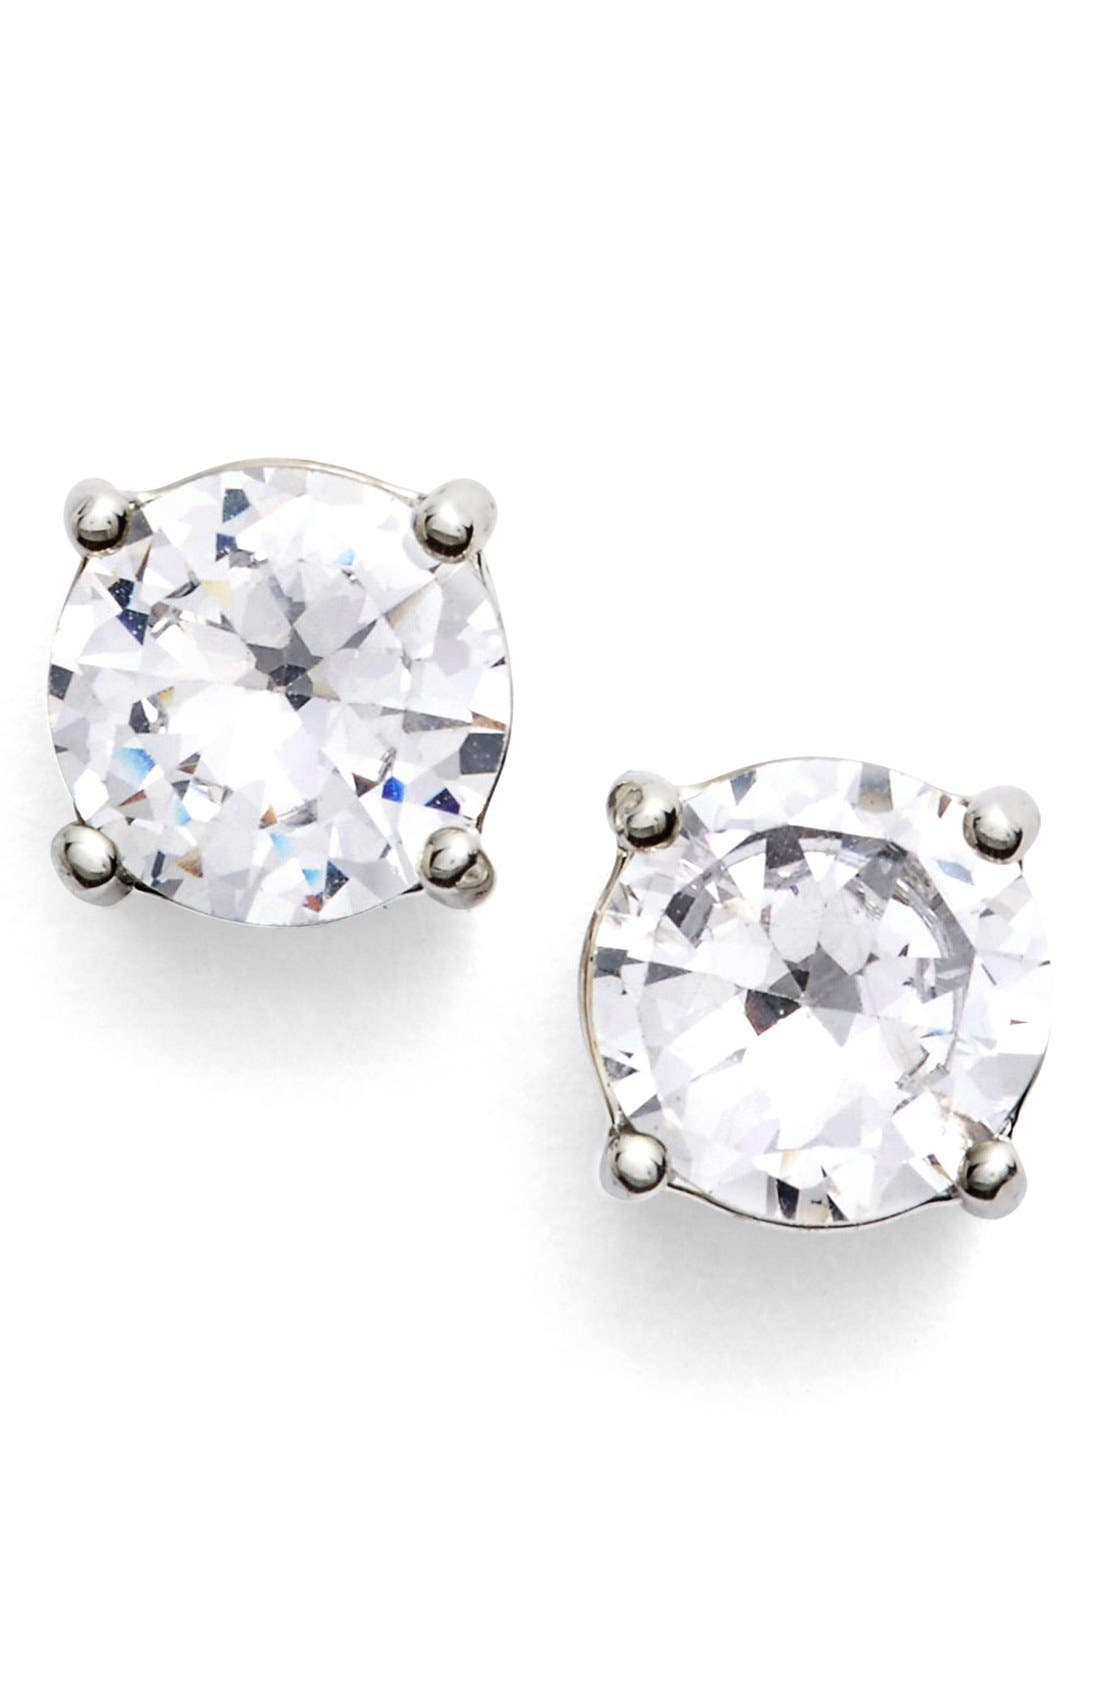 Crystal Stud Earrings,                             Main thumbnail 1, color,                             Silver